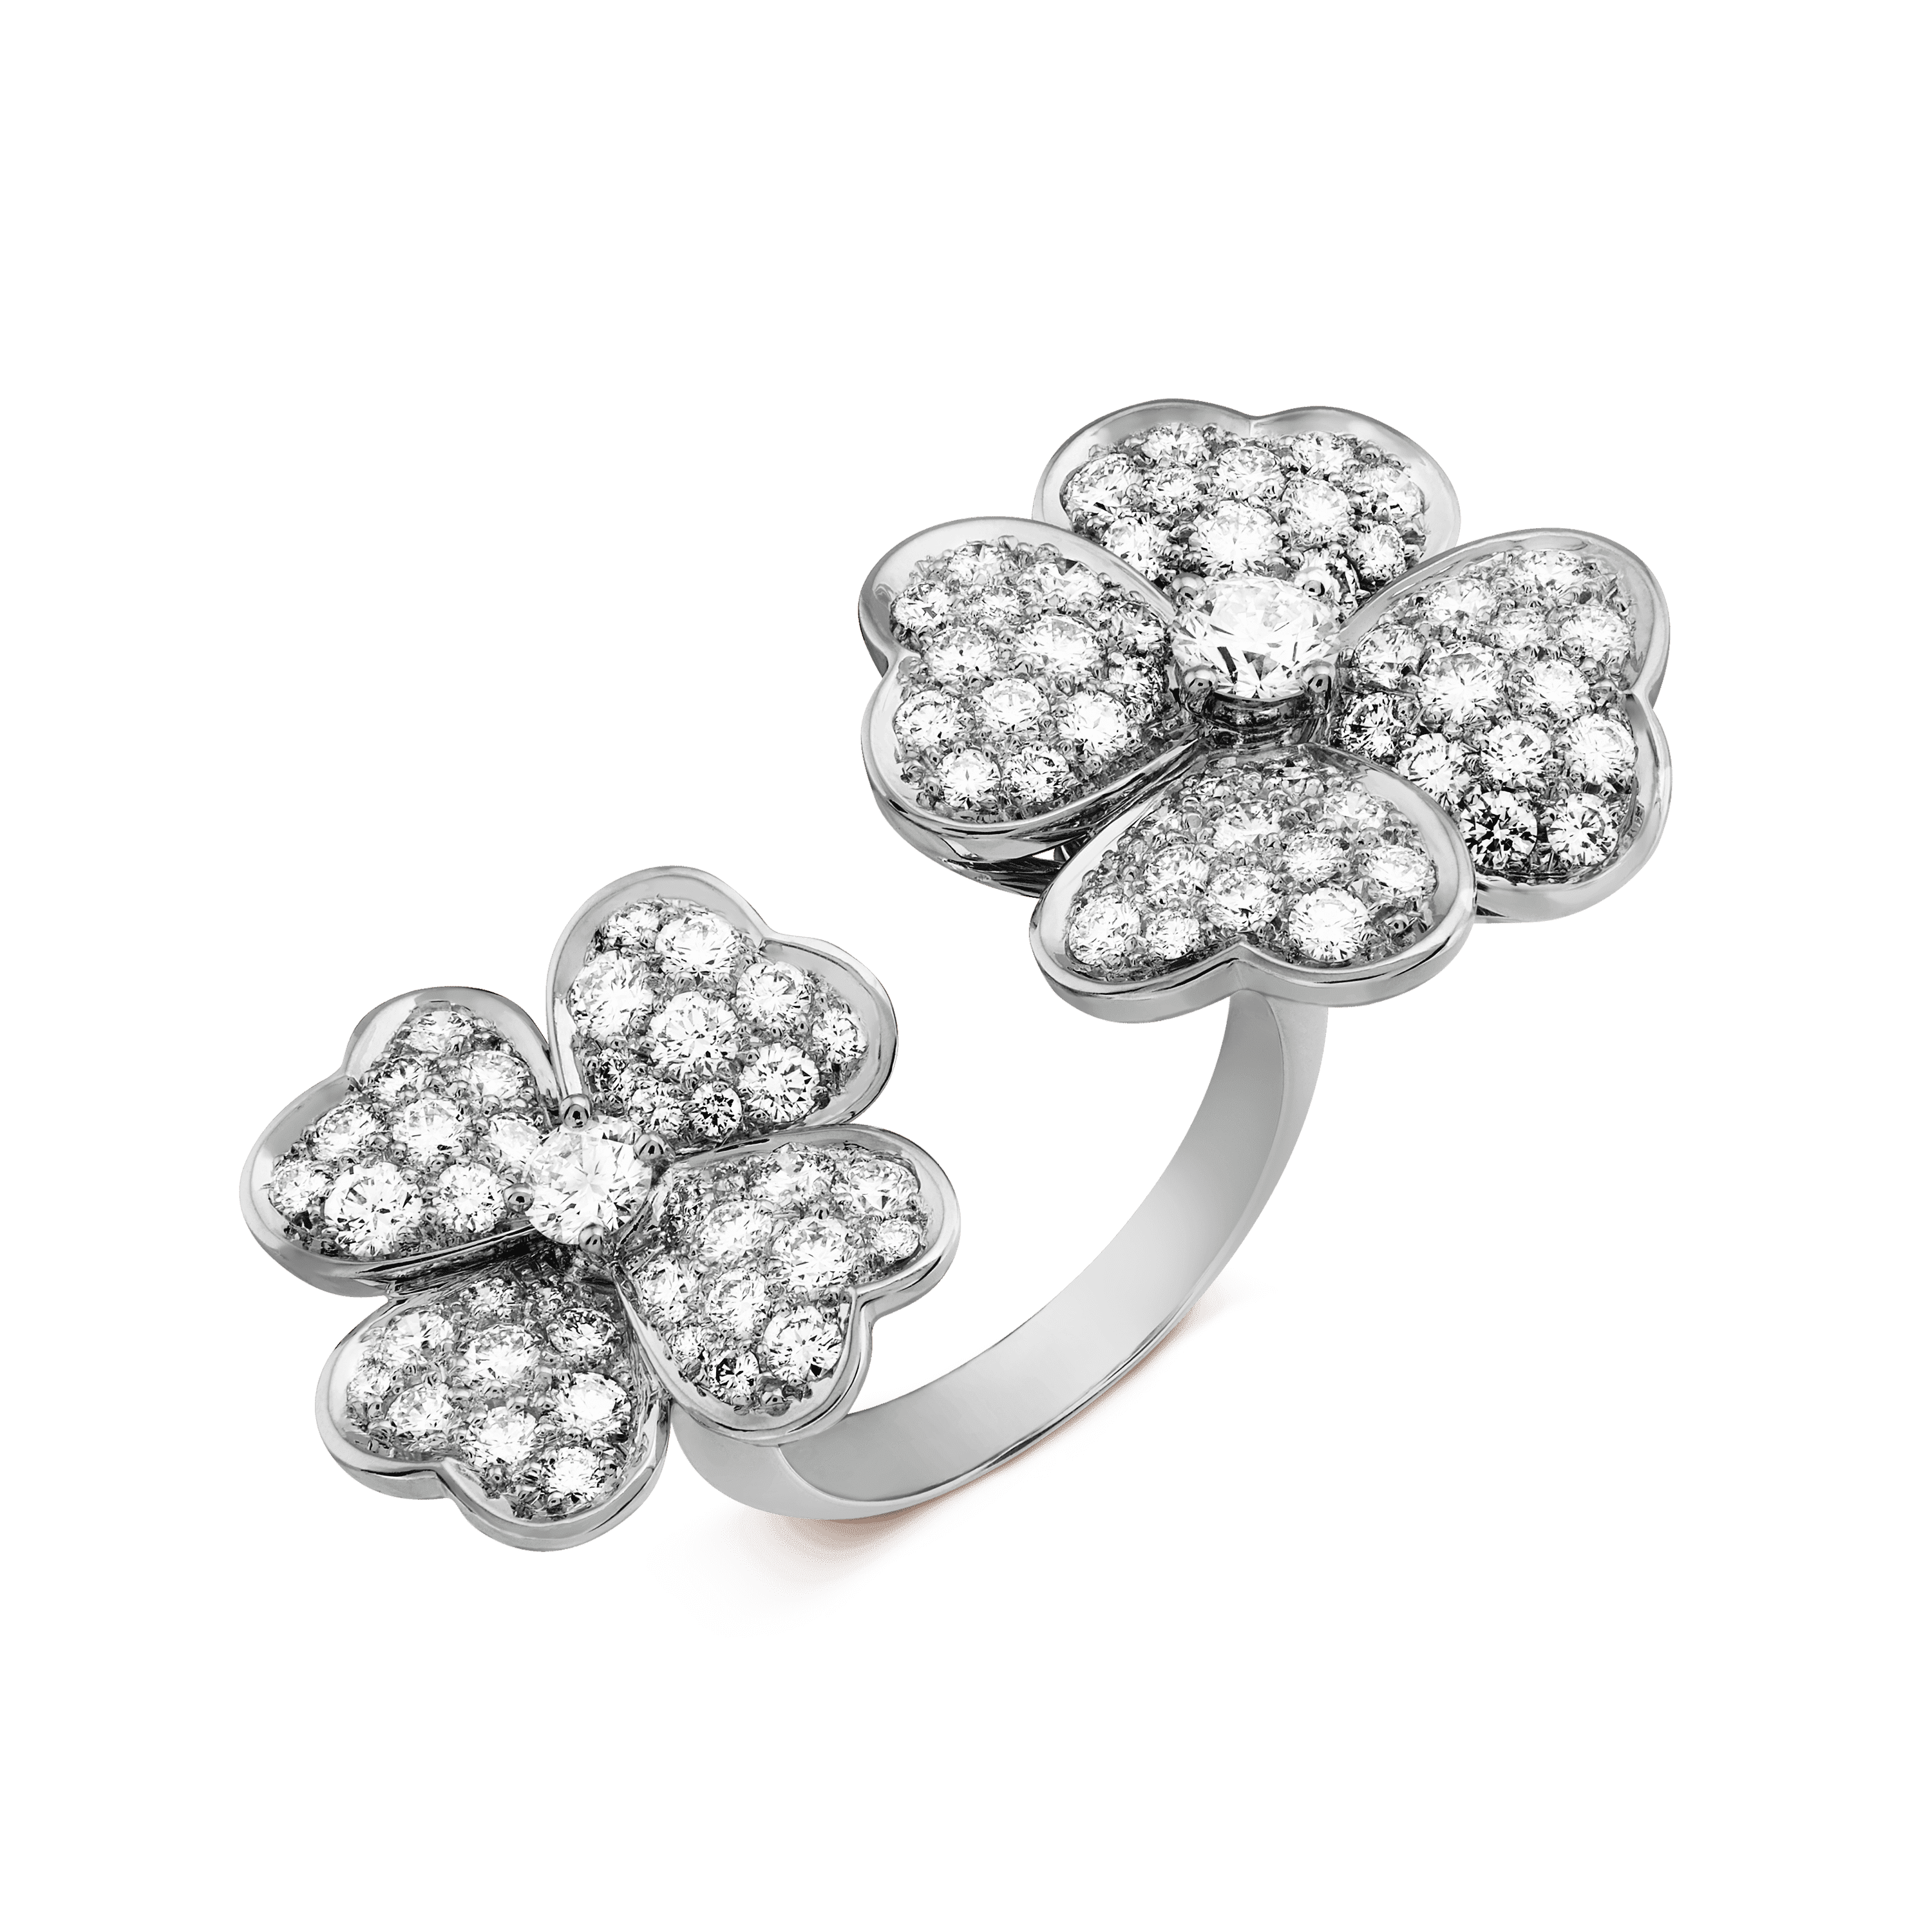 Cosmos Between the Finger ring, - 3|4 View - VCARO6A800 - Van Cleef & Arpels